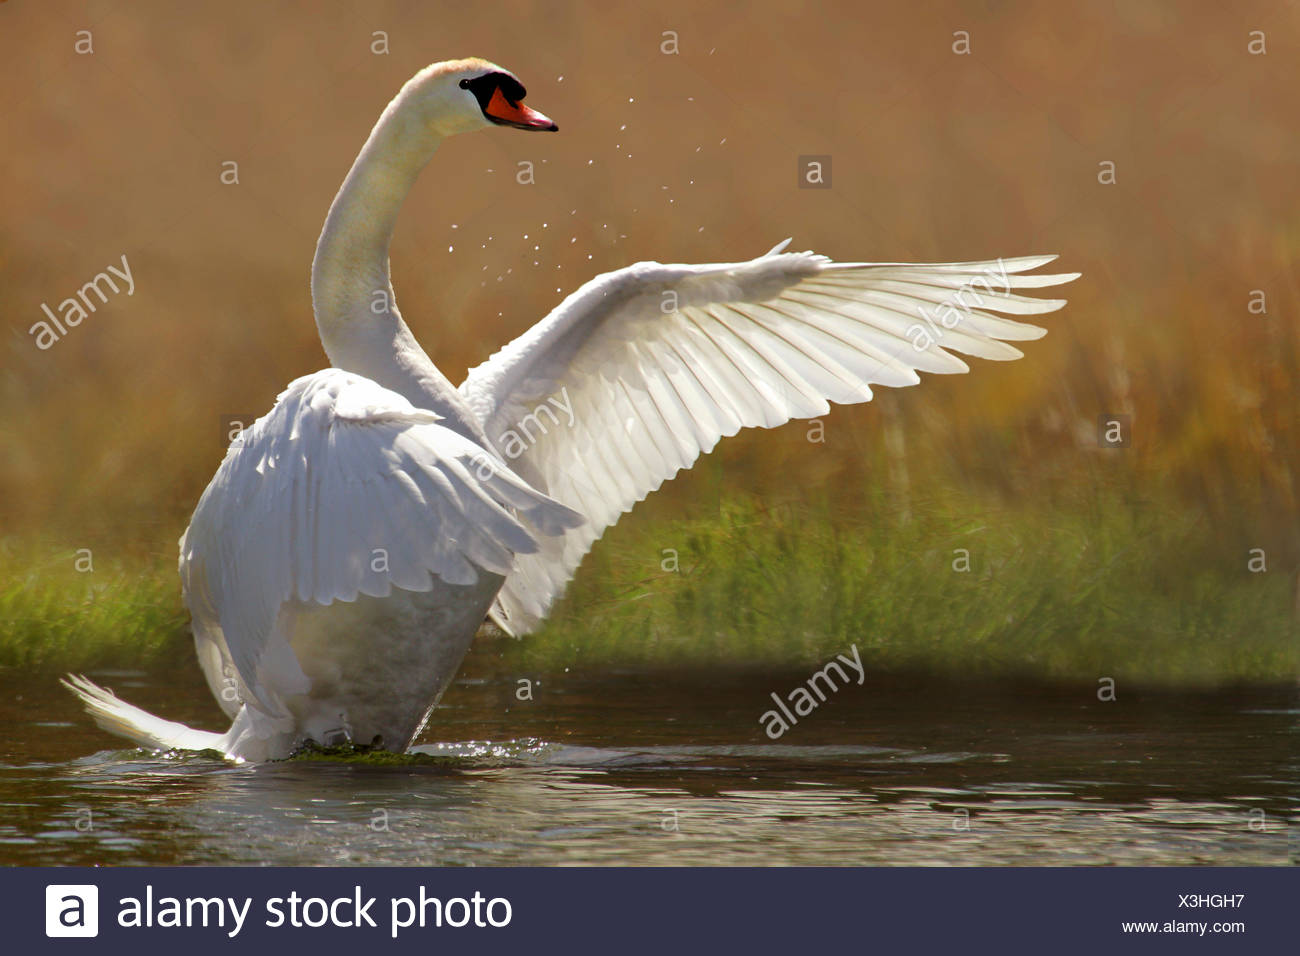 mute swan (Cygnus olor), flapping wings, Germany - Stock Image